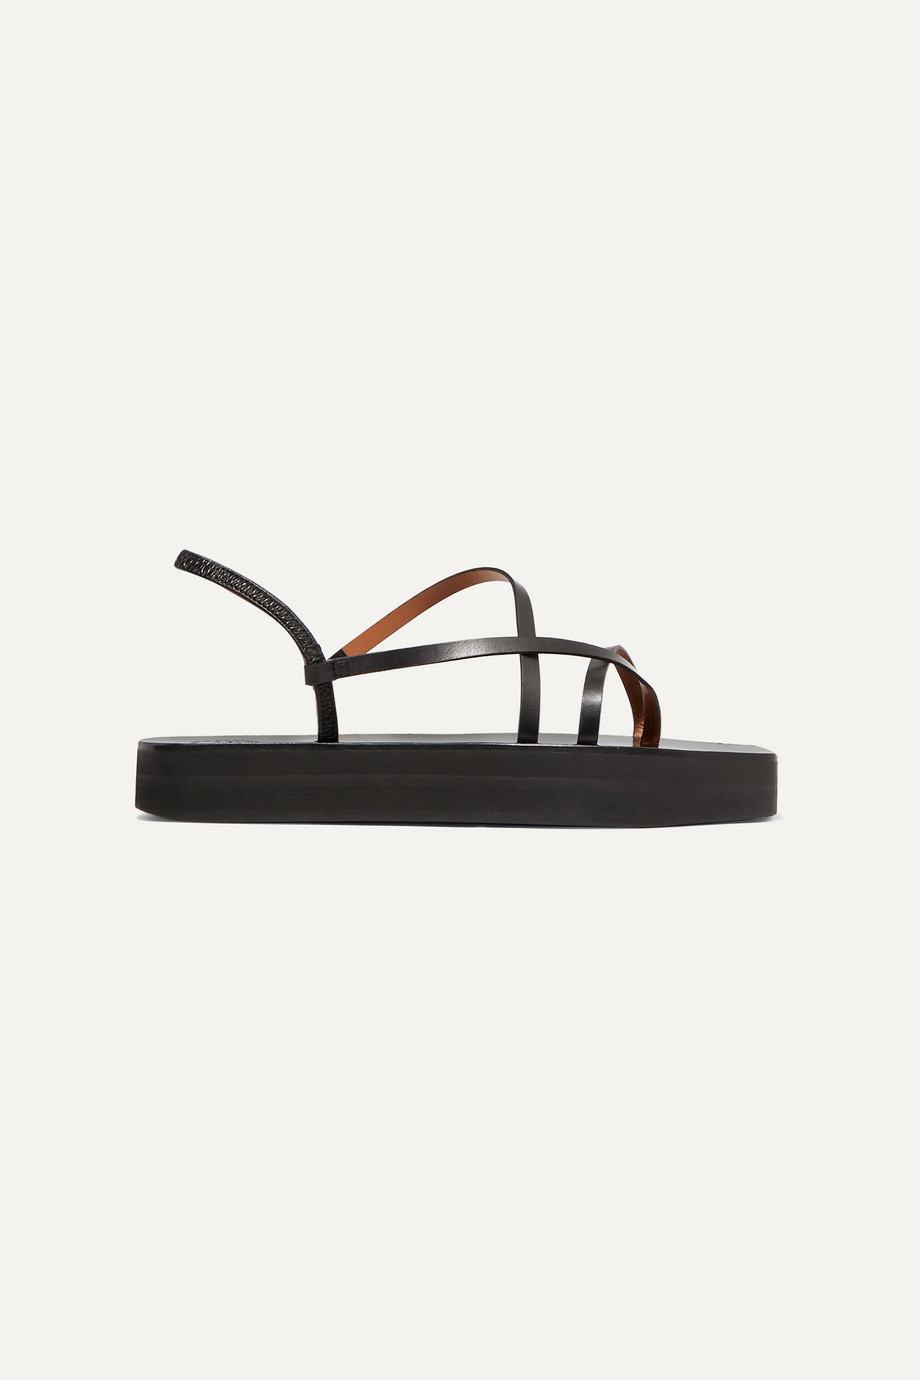 ATP Atelier Maremma leather platform sandals